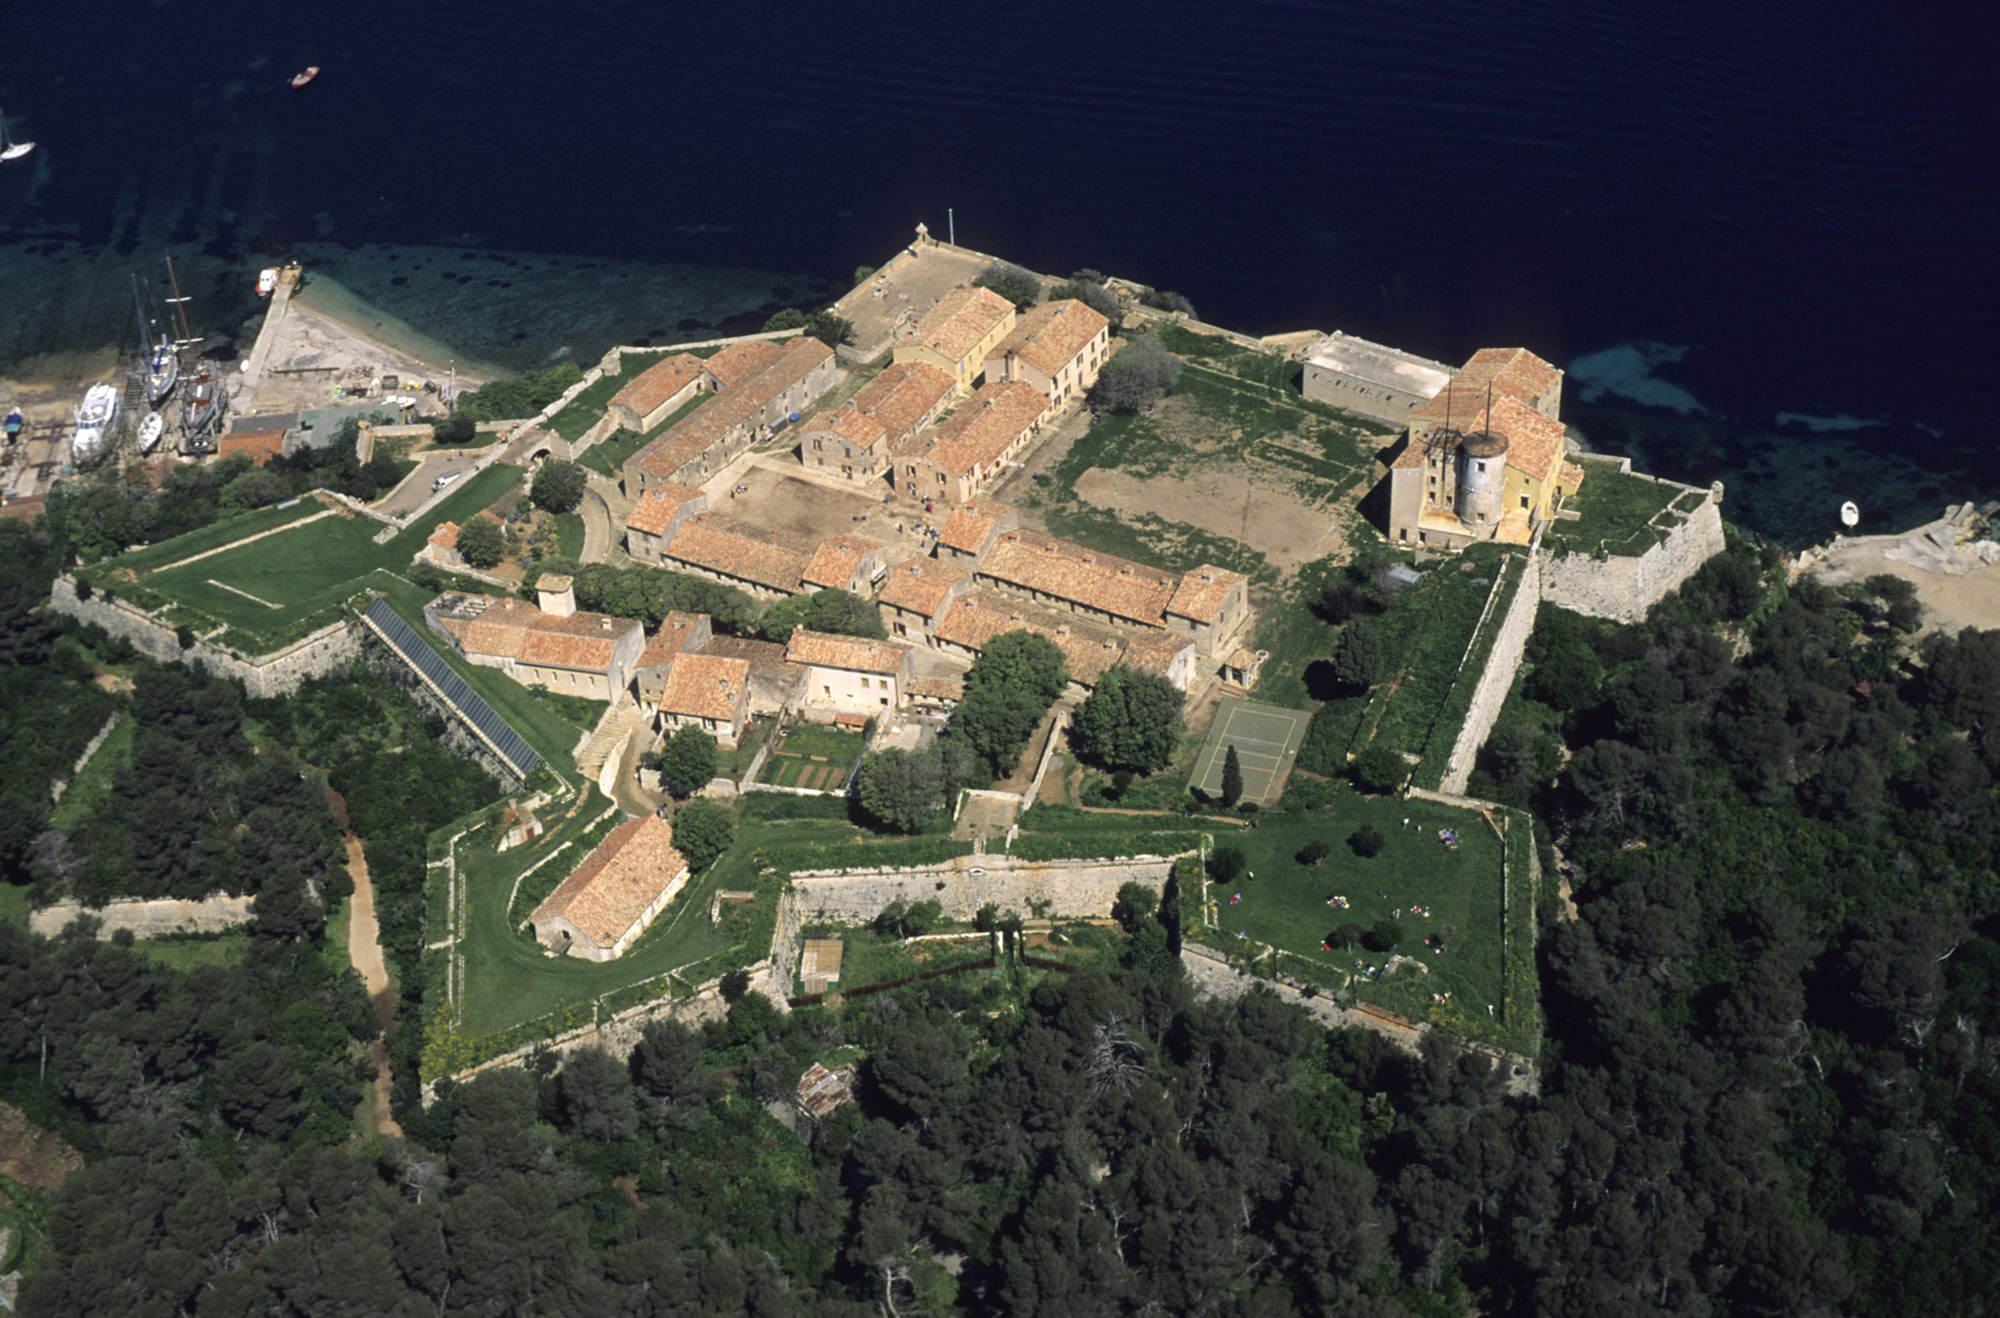 "Image shows Aerial view of the Royal fort on the island of Sainte-Marguerite in the LØrins Islands archipelago, facing Cannes. Designed by Vauban in the late 17th century, the fort was used as a Government prison including the famous ""Man in the Iron Mask"". Atout France/Emmanuel Valentin"